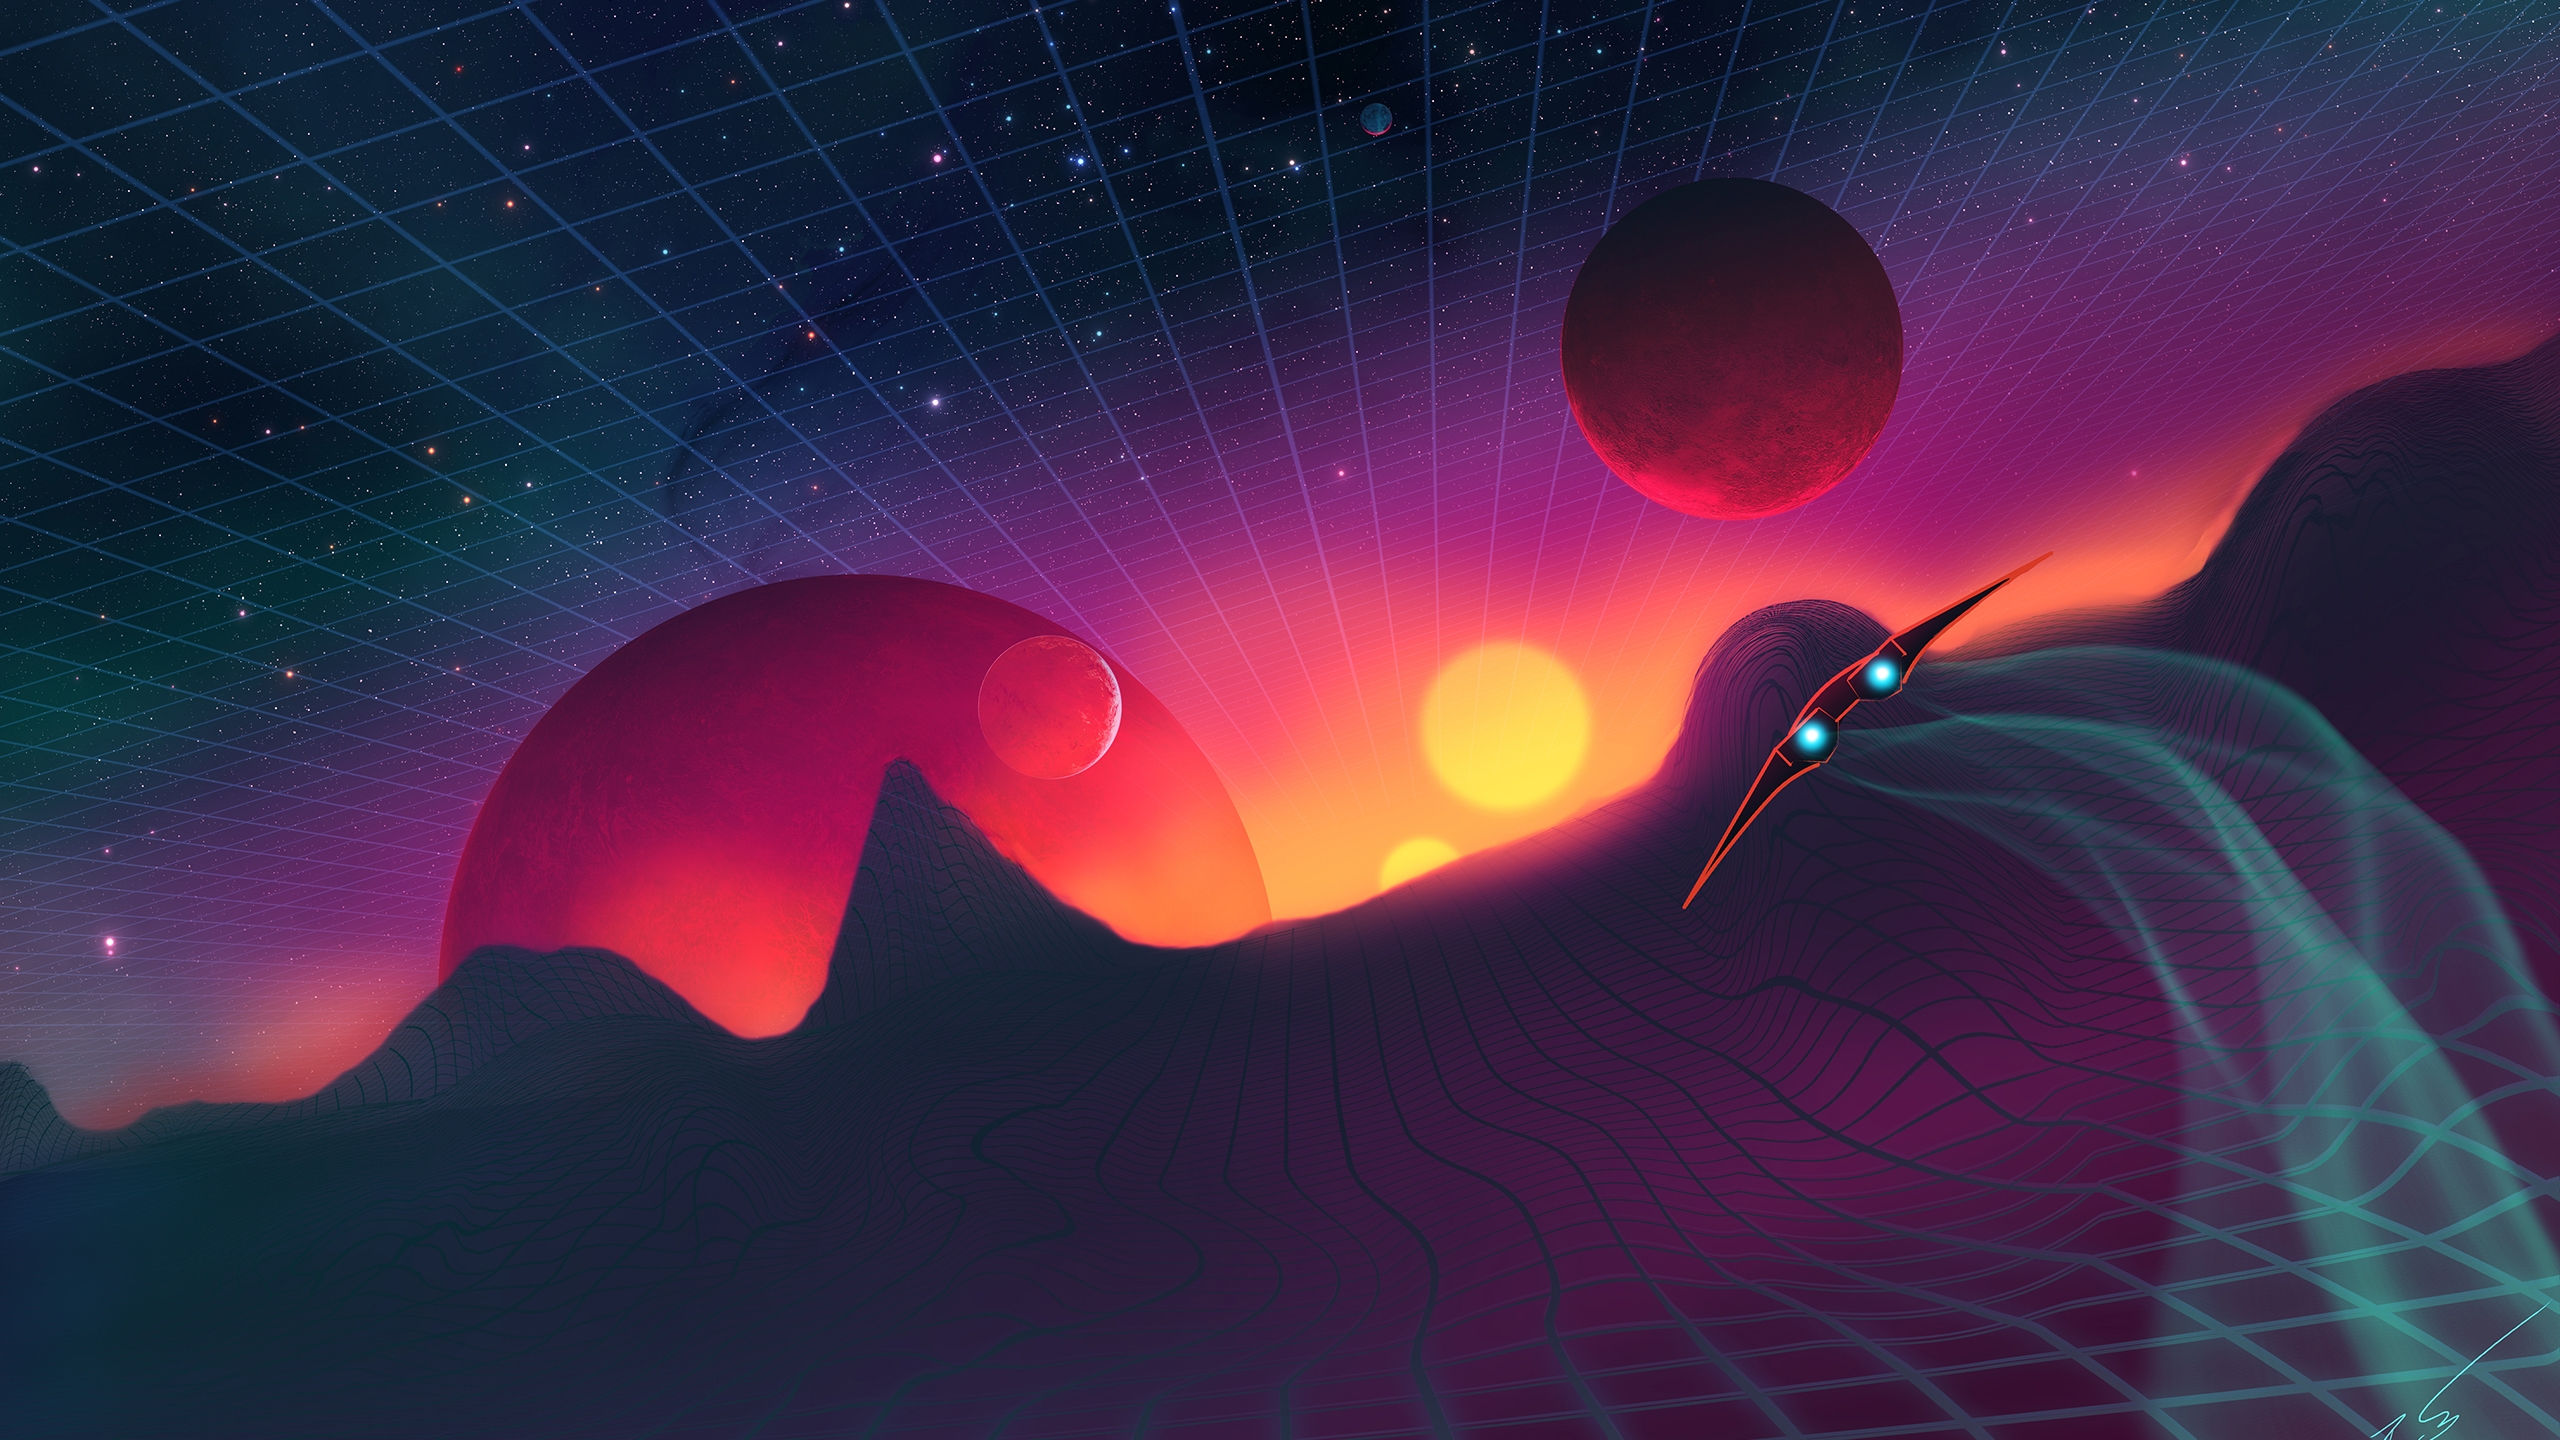 30 309932 synthwave landscape planets retrowave spaceship retro wave wallpaper